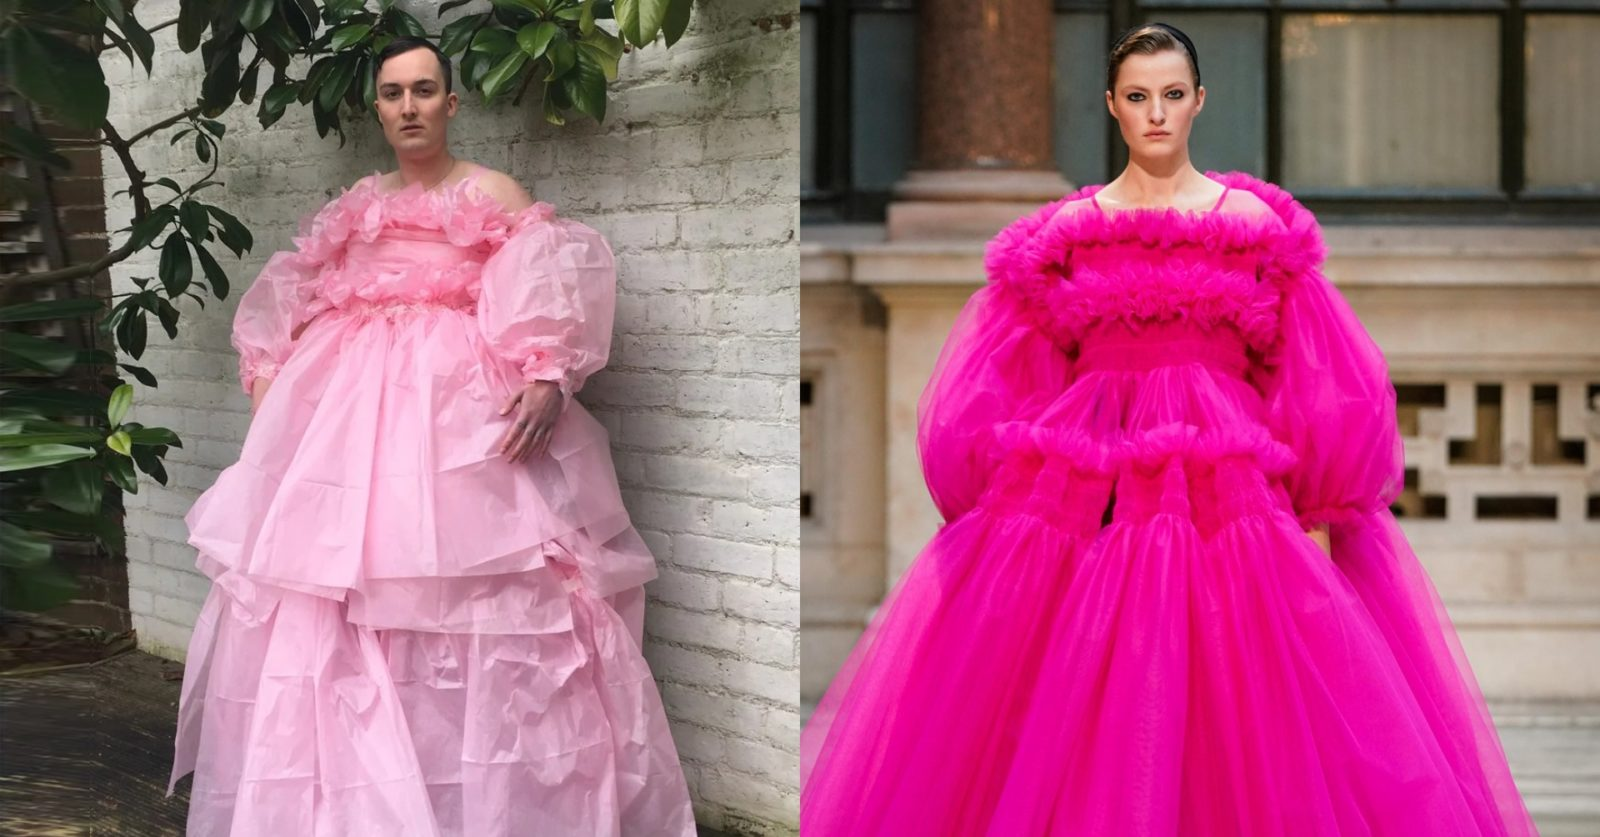 #HomeCouture, Instagram's latest fashion trend hilariously recreates couture looks